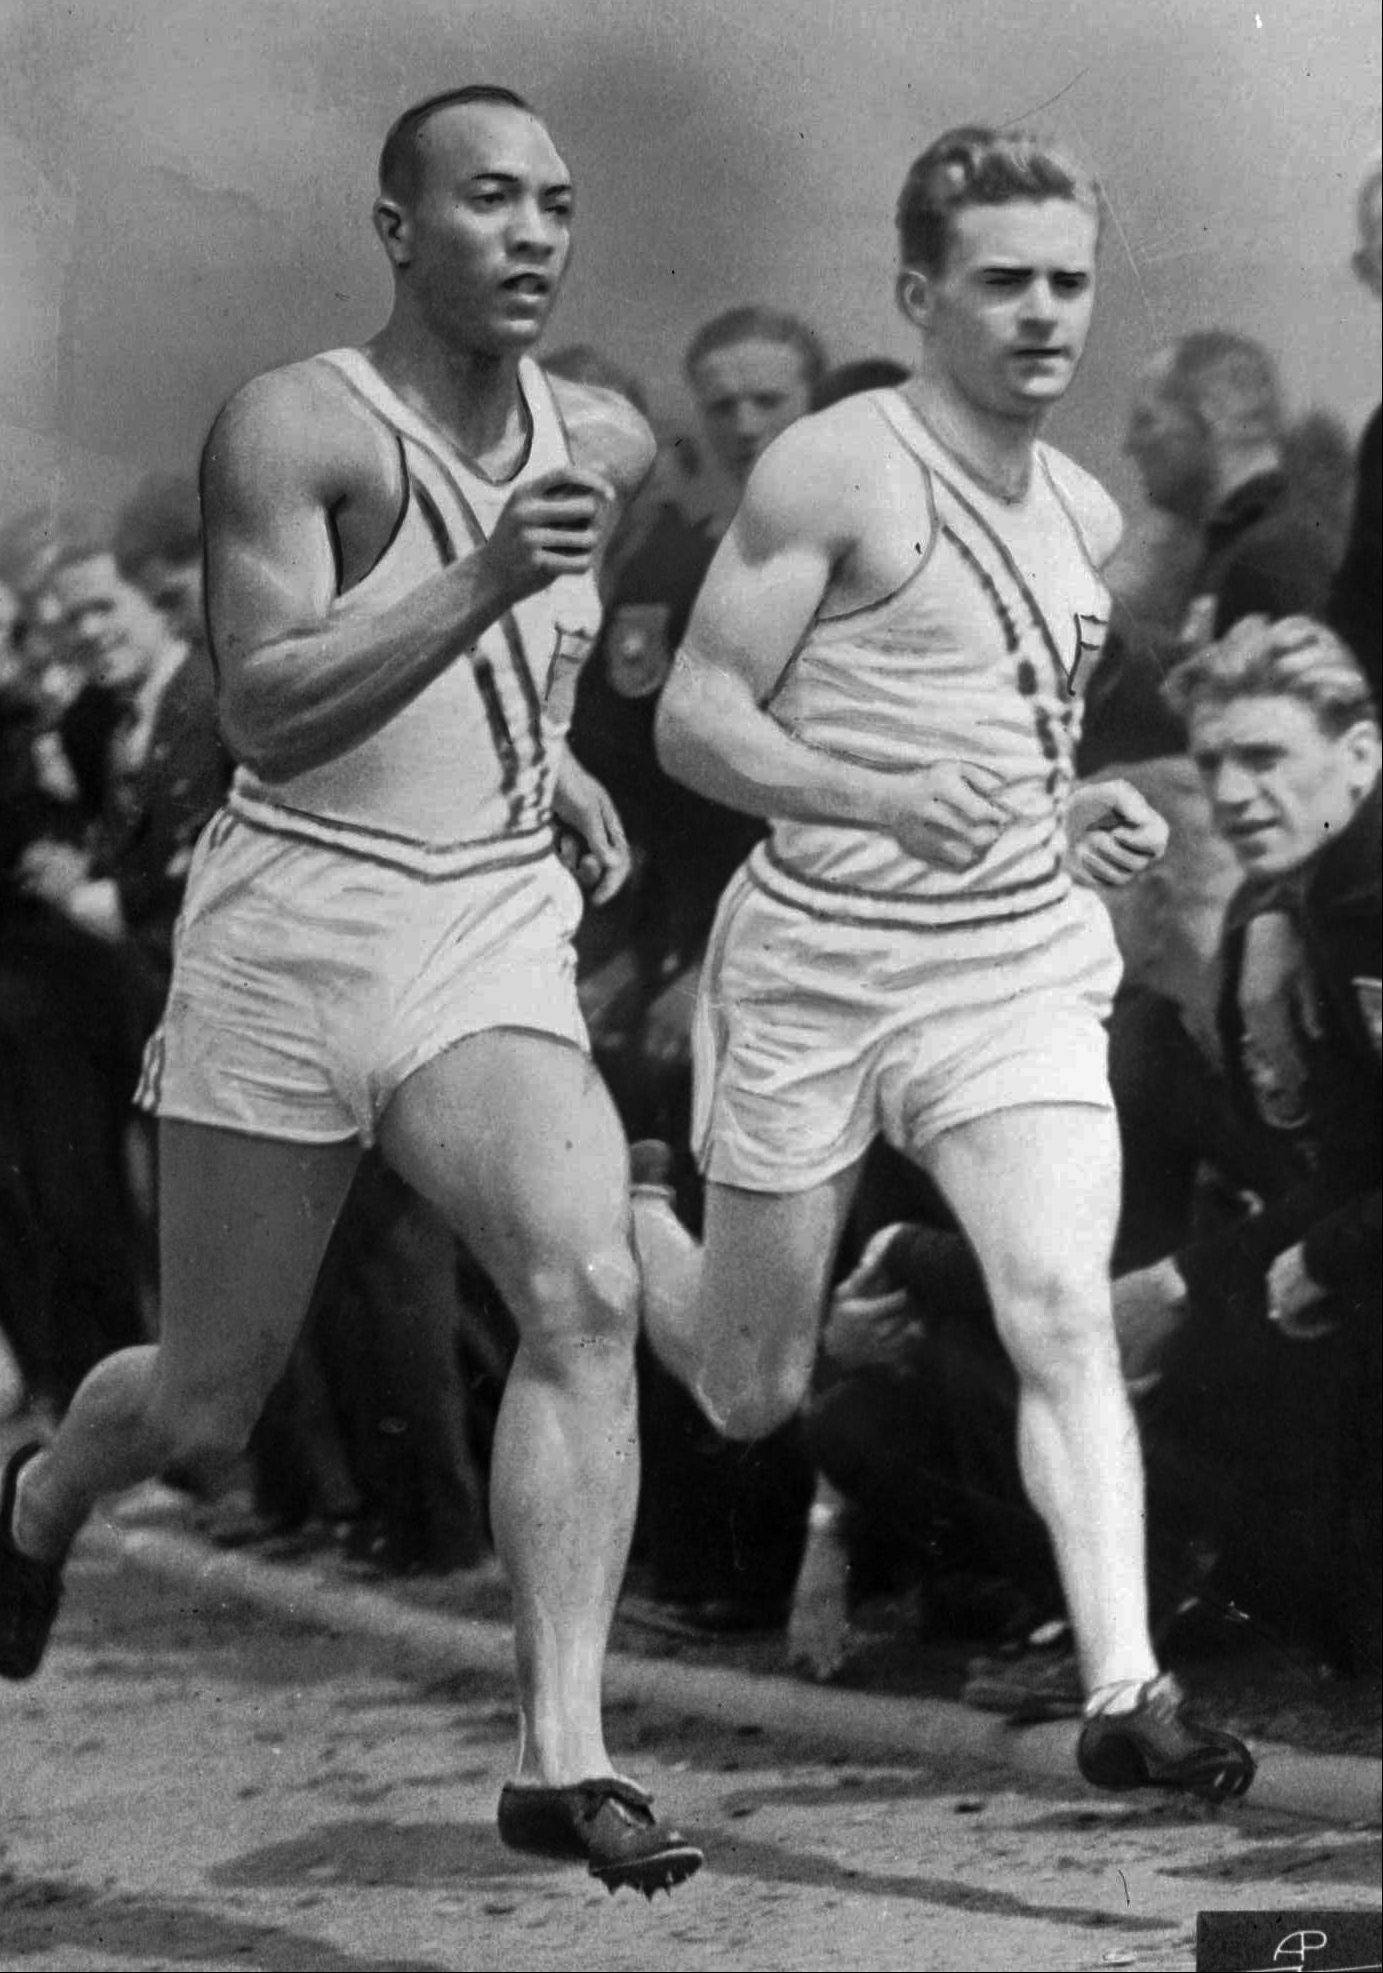 Americans Jesse Owens, left, and Frank Wykoff, right, are shown working out in the Olympic village in Berlin, Germany on Aug. 6, 1936.